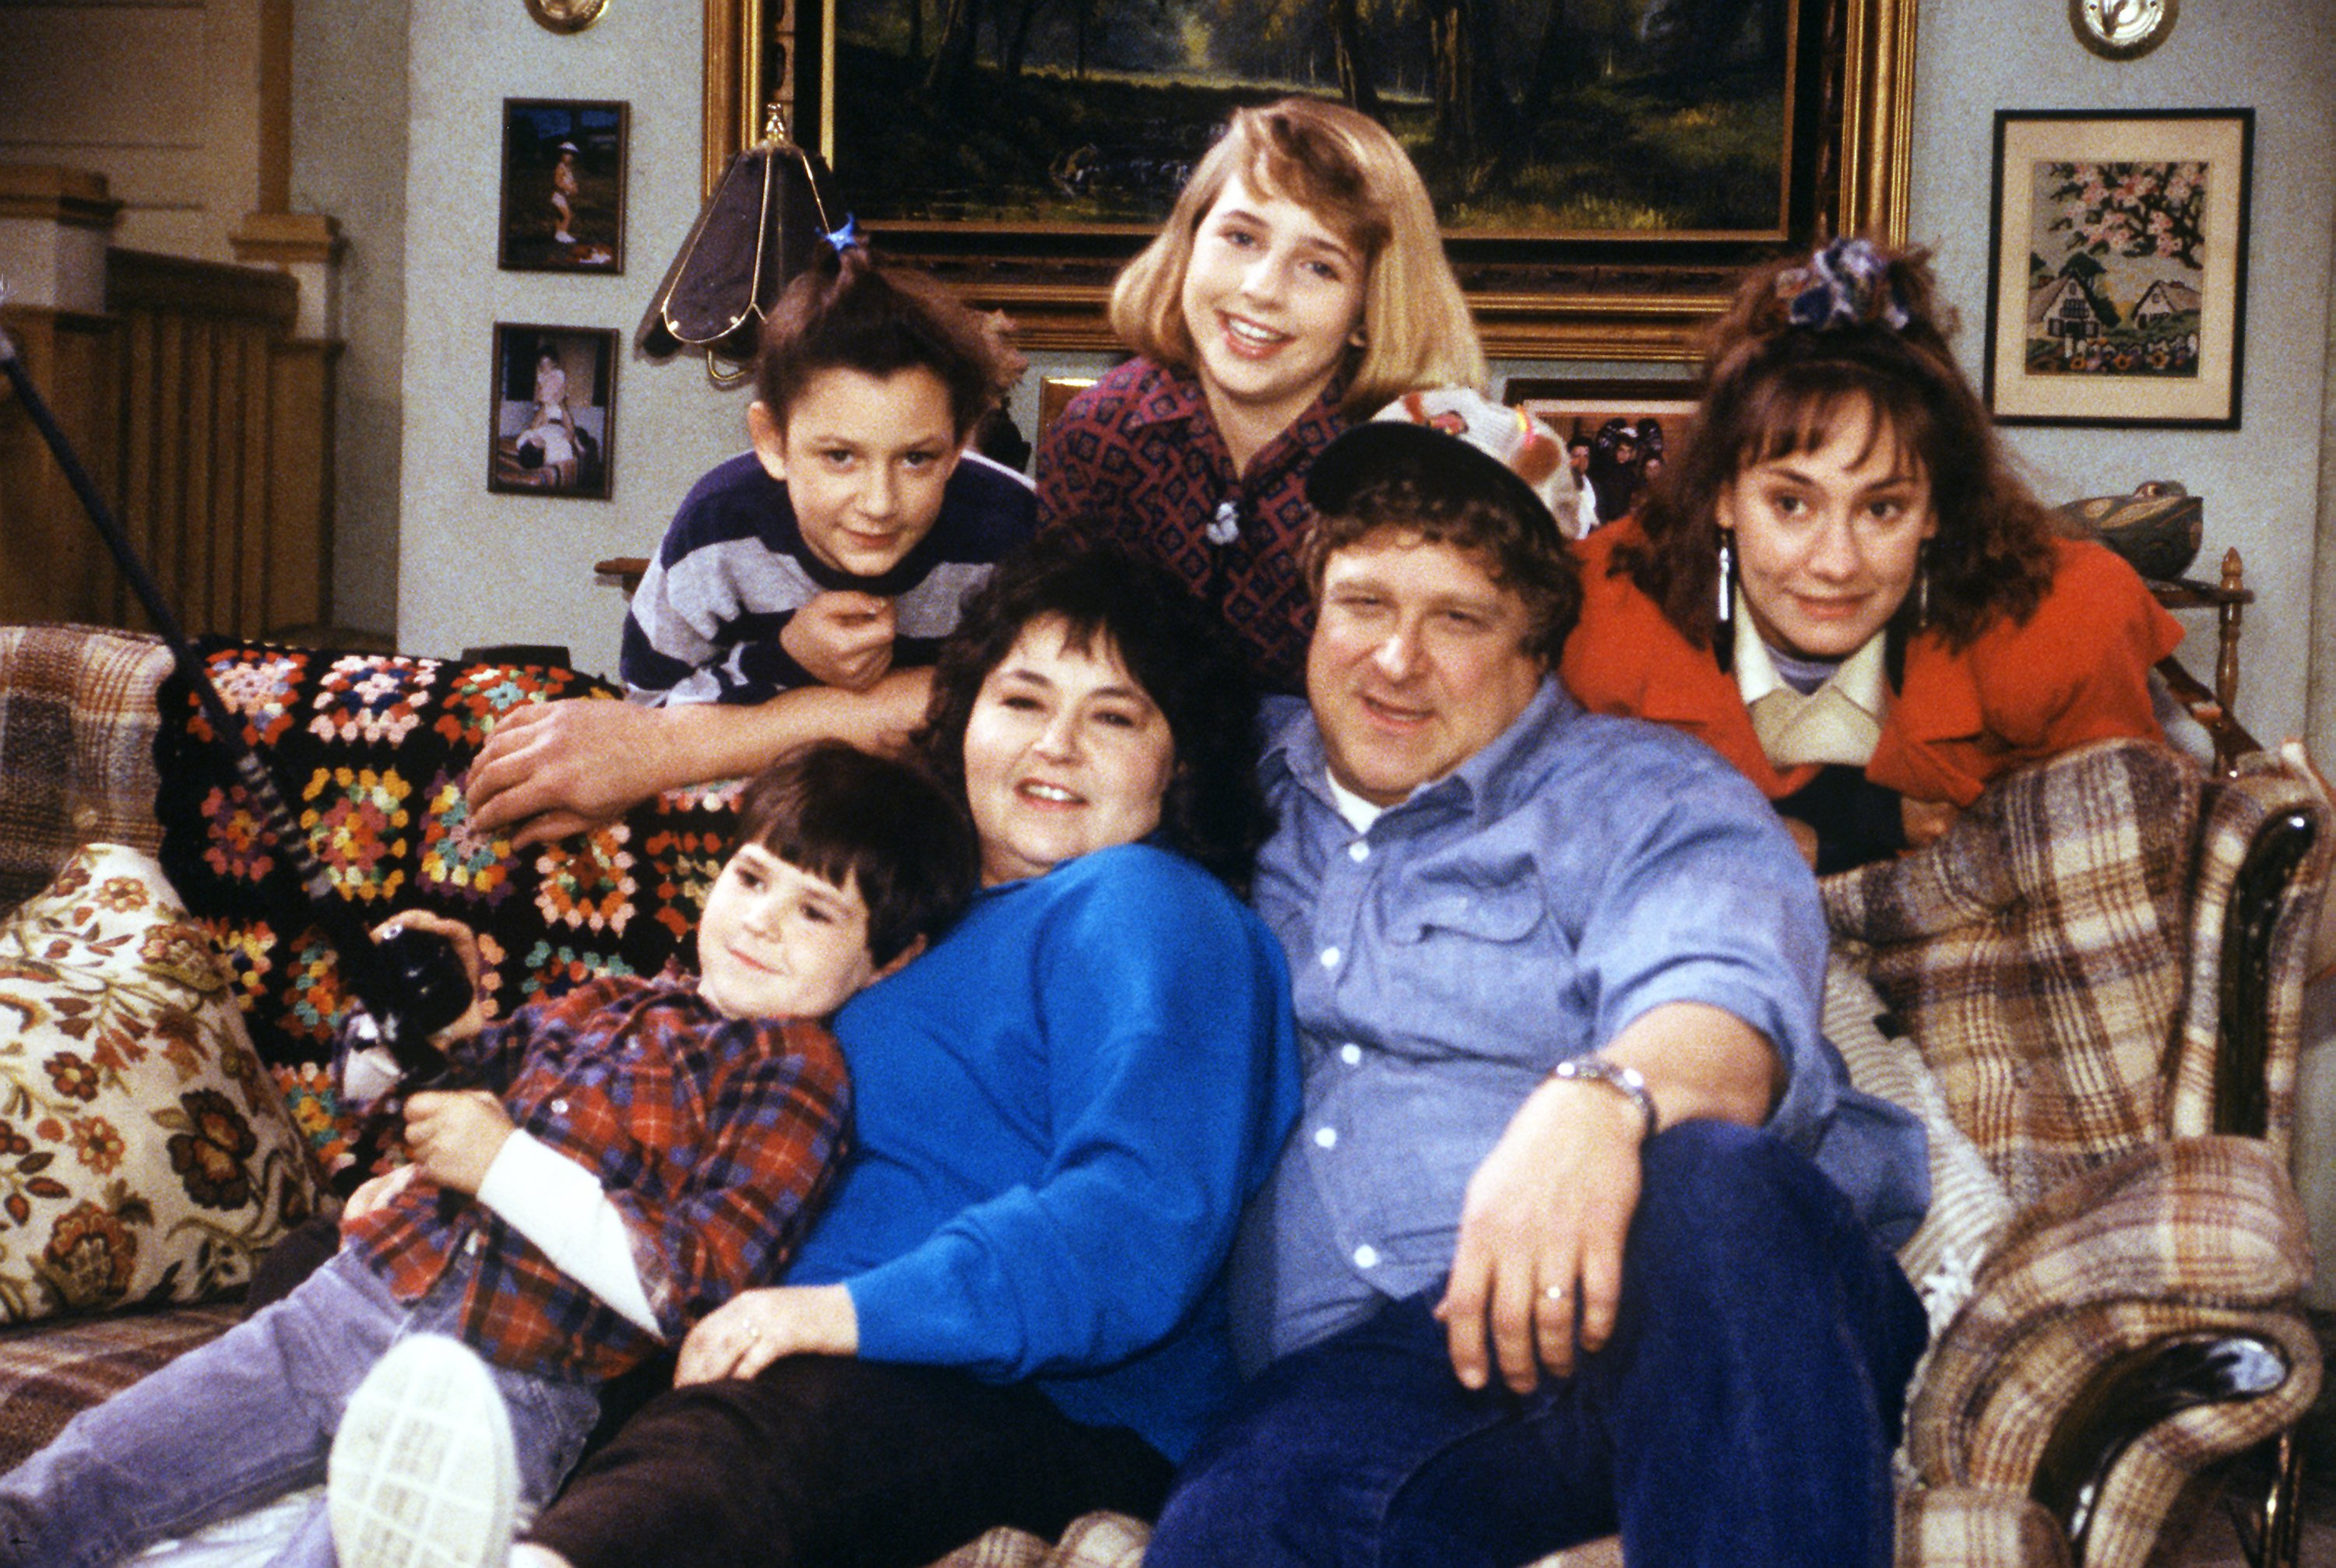 roseanne comedy series sitcom television 3 wallpaper 3000x2014 333700 wallpaperup. Black Bedroom Furniture Sets. Home Design Ideas